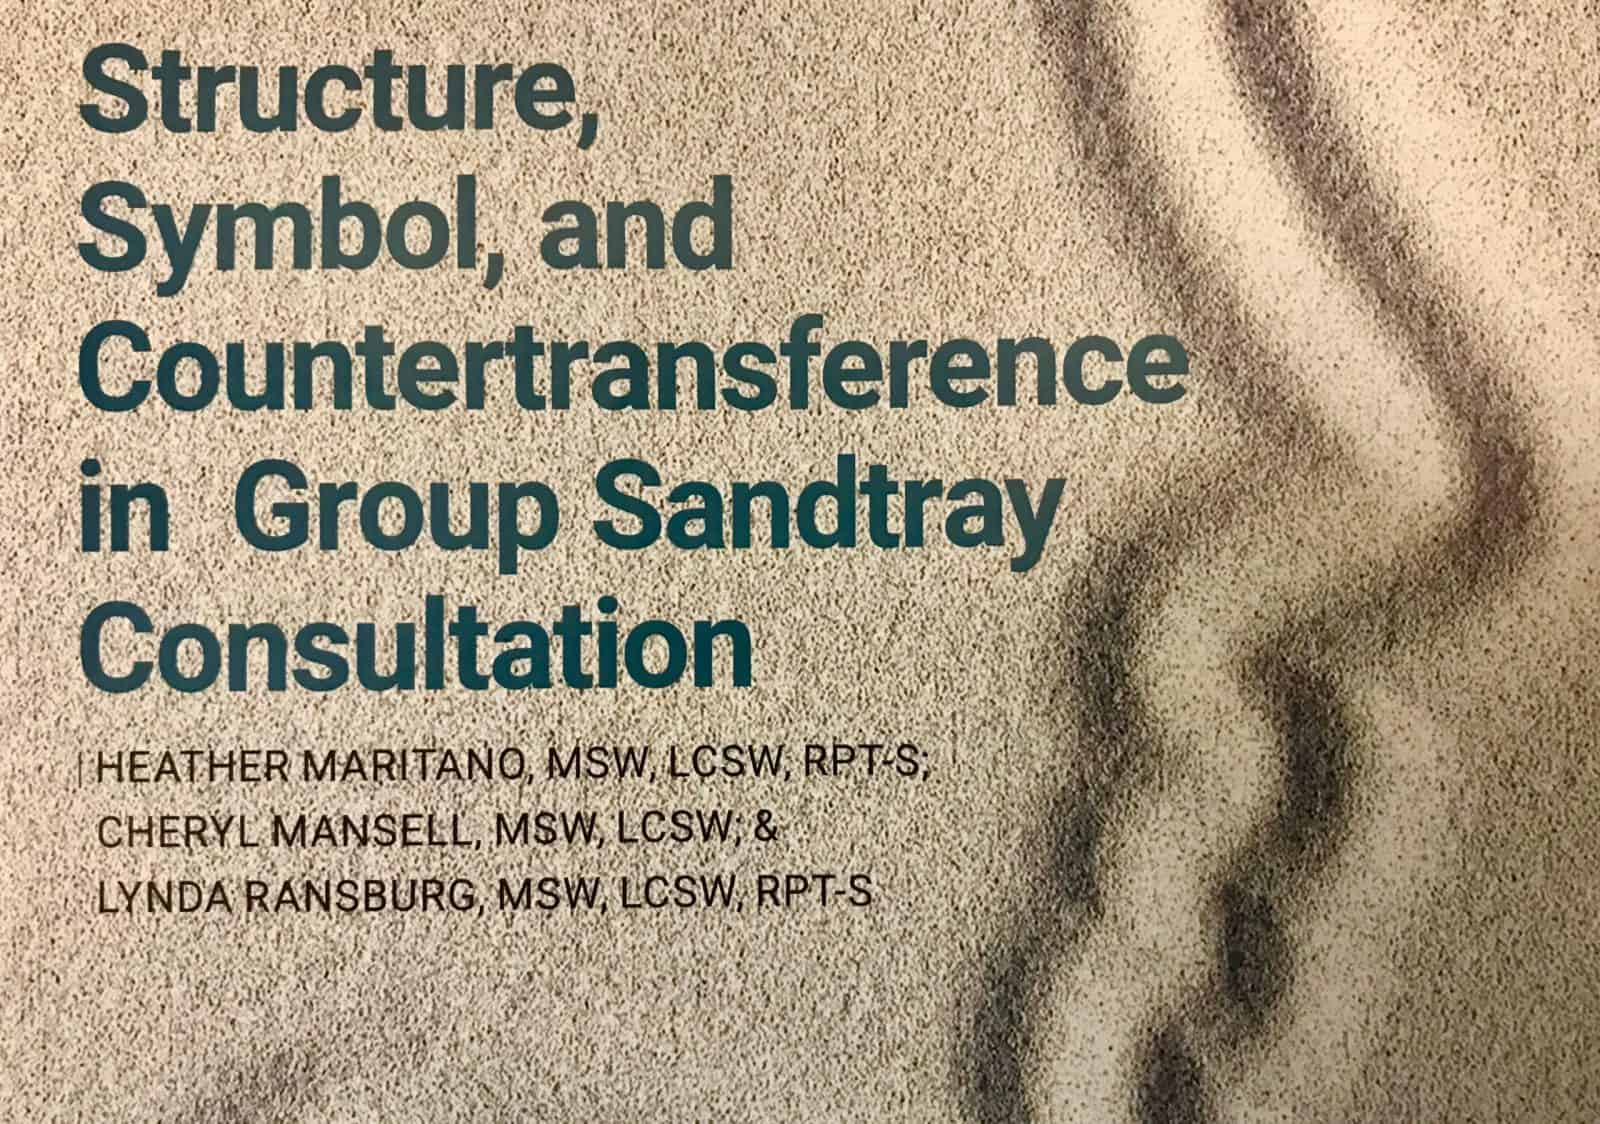 Using Sandtray In Clinical Consultation